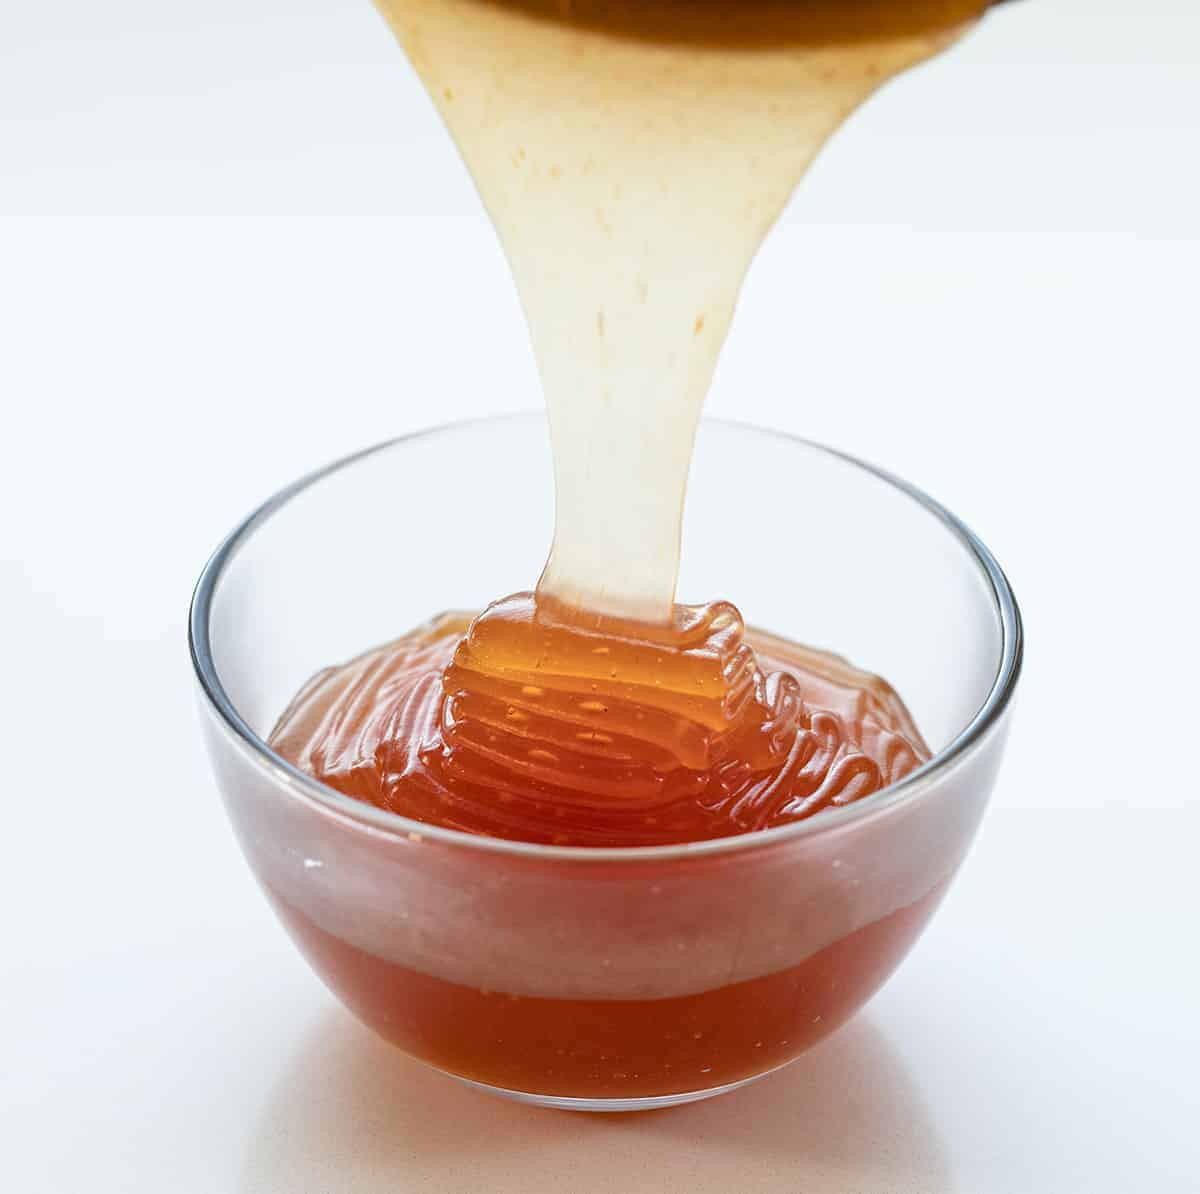 Pouring Hot Sweet and Sour Sauce into Cup